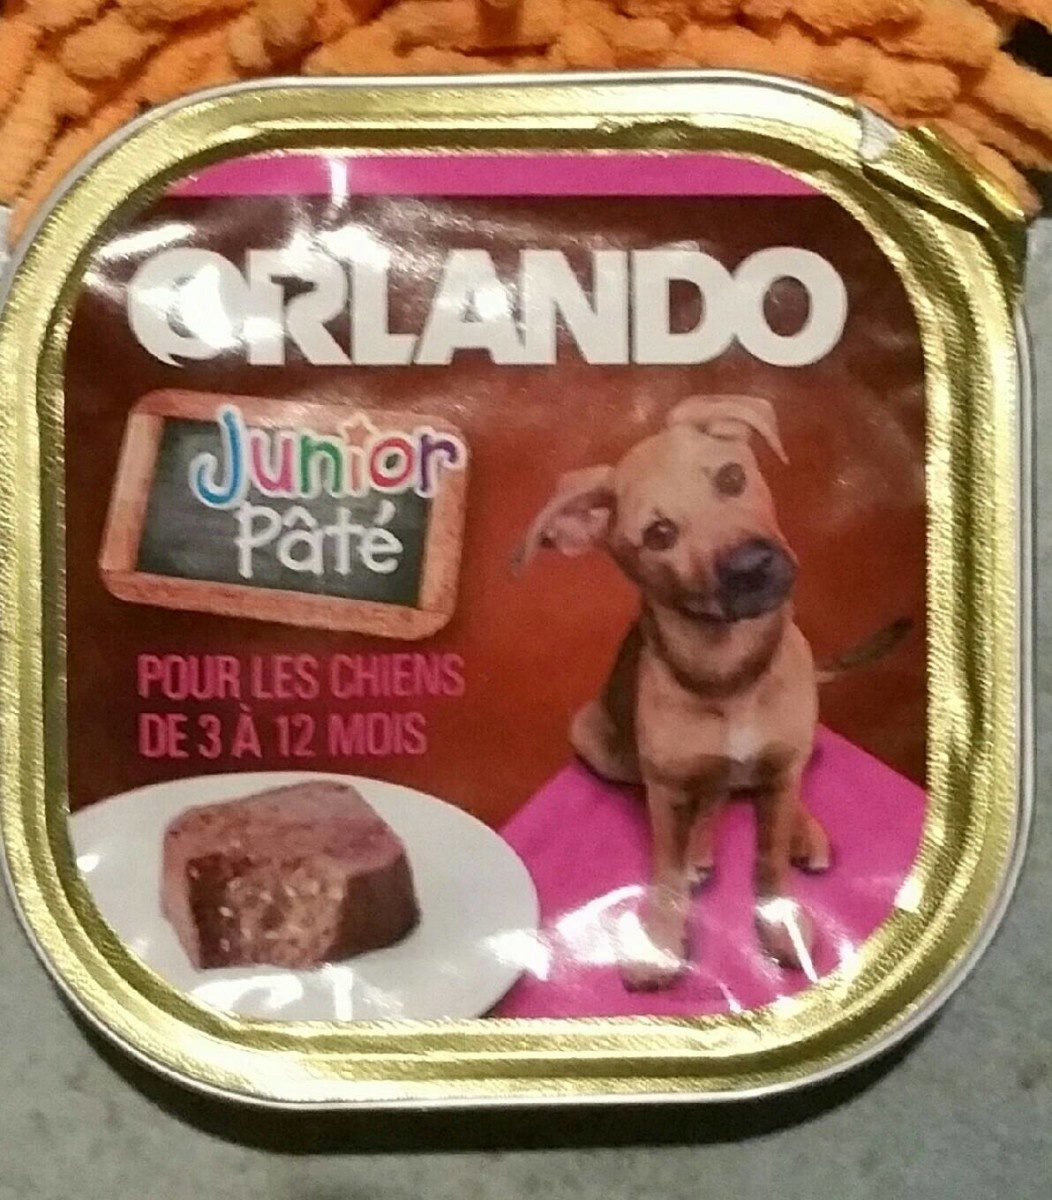 Junior pâté - Product